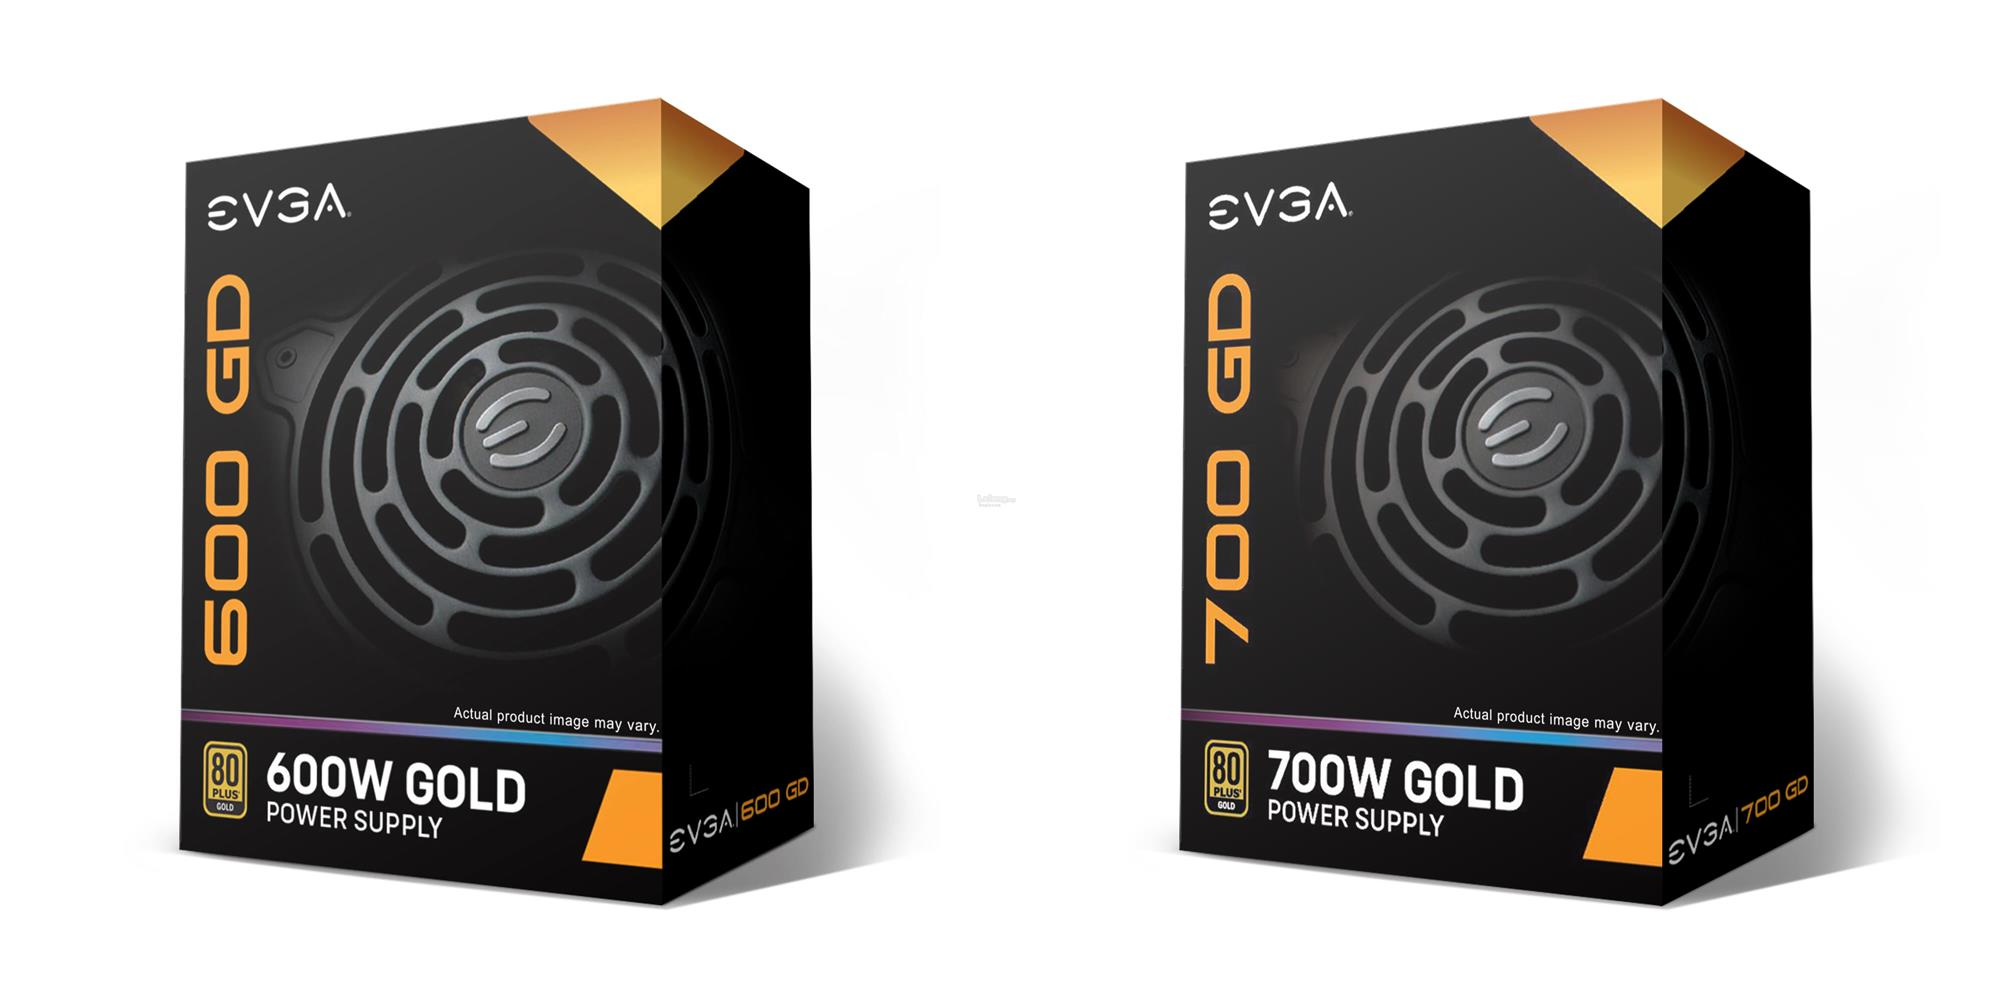 # EVGA GD Series 80+ Gold Non Modular PSU # 600W/700W